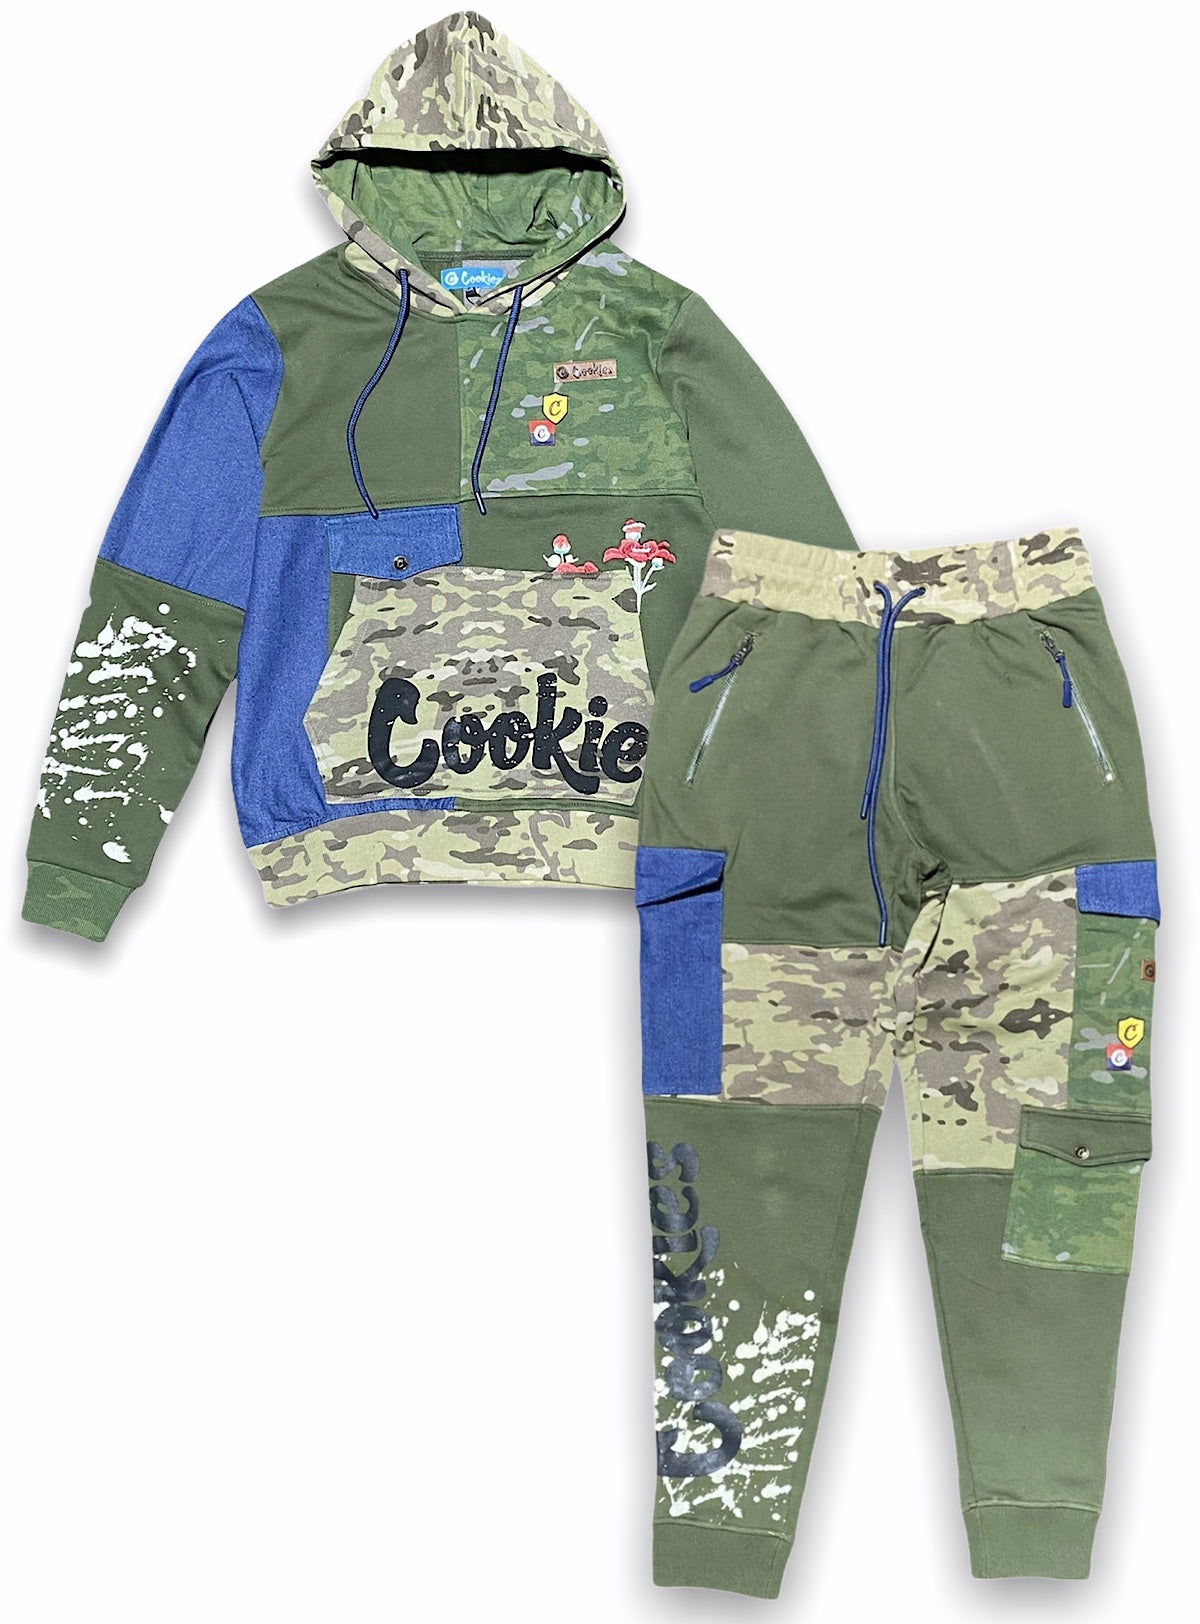 Cookies Sweatsuit - Backcountry Pullover Hoodie and Pants - Olive - 1546H4304